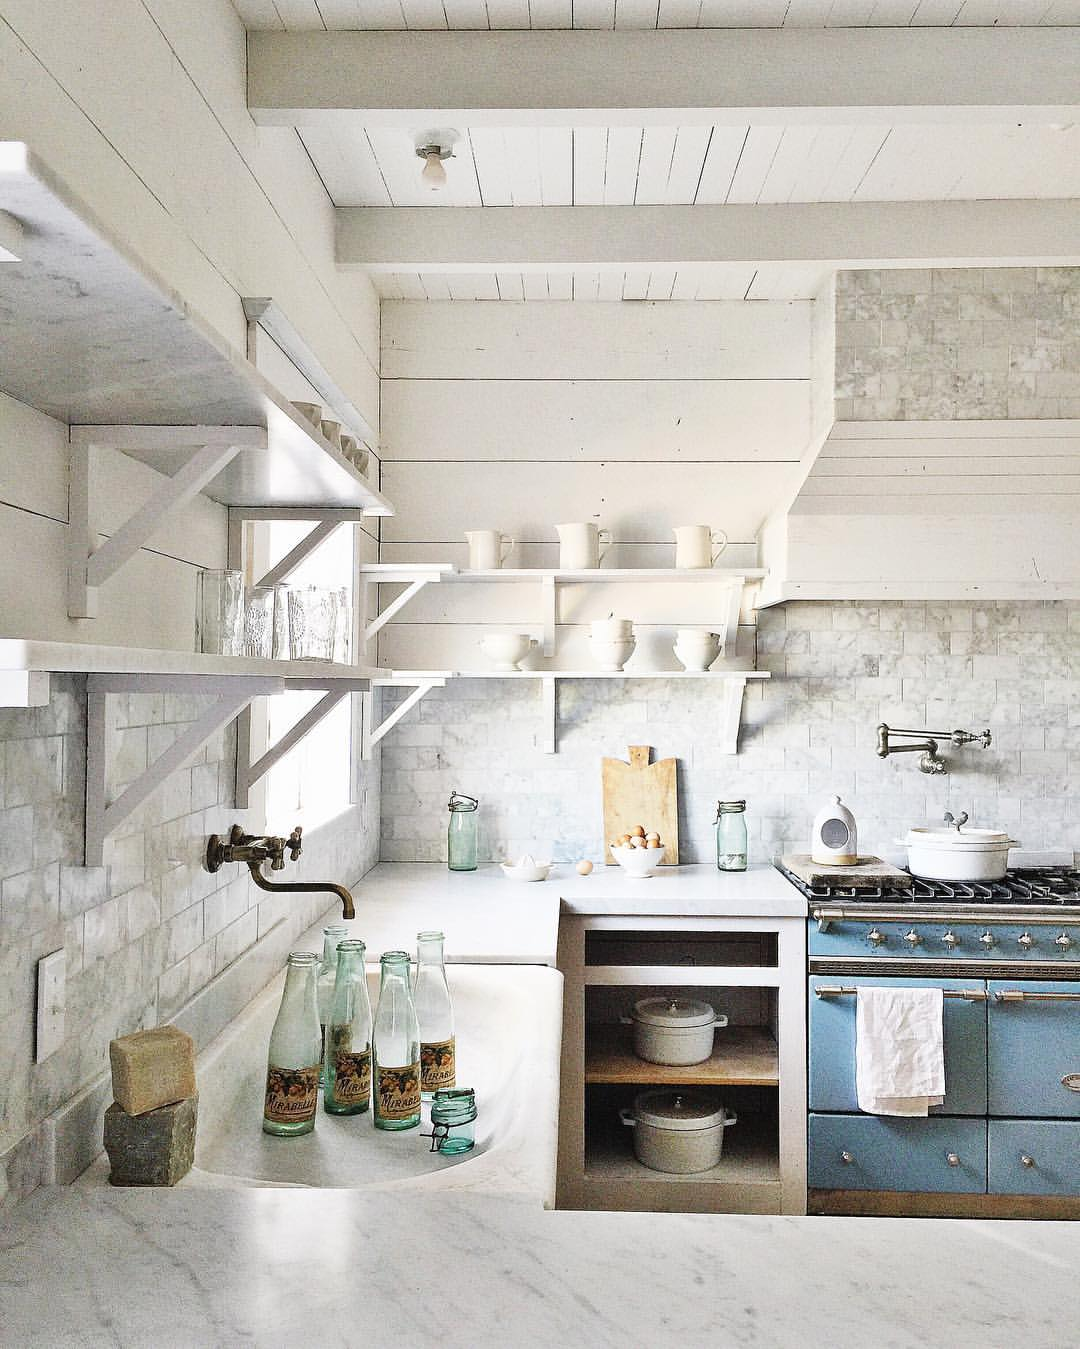 Blue And White Kitchen Decor Inspiration From The French Farmhouse Style  Kitchen Of Dreamy Whites.